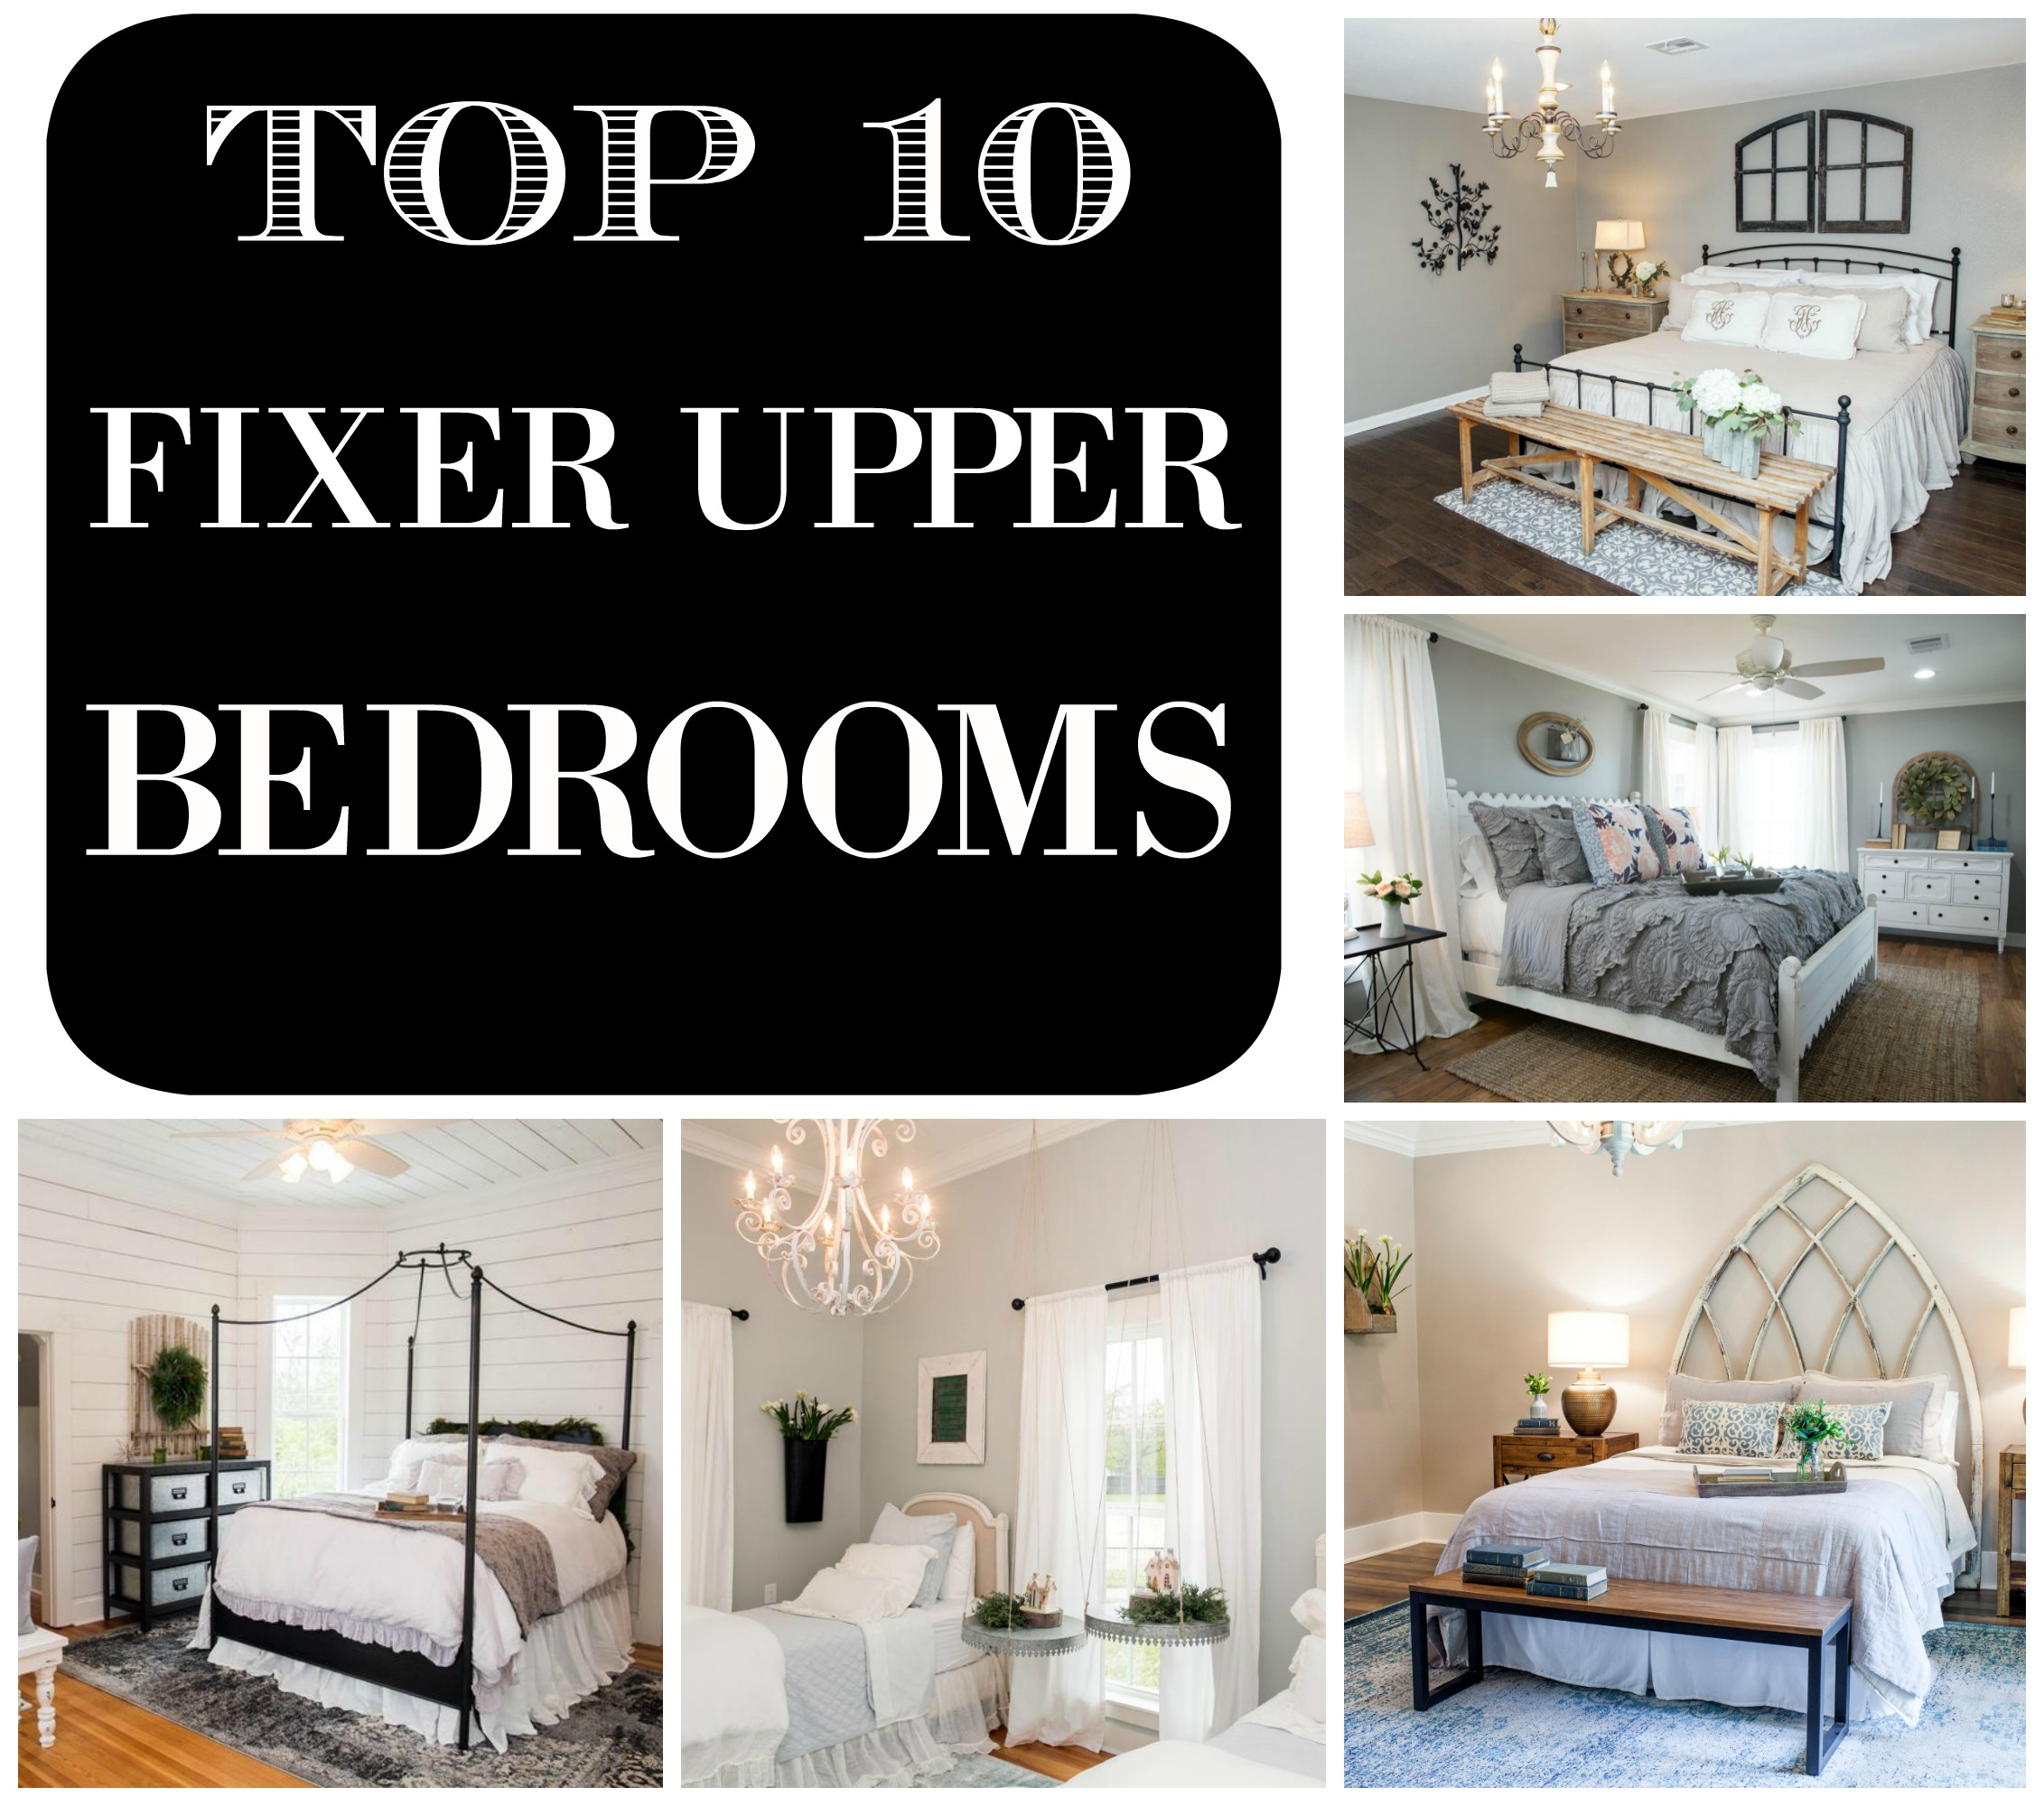 Hgtv Master Bedroom Design: Top 10 Fixer Upper Bedrooms